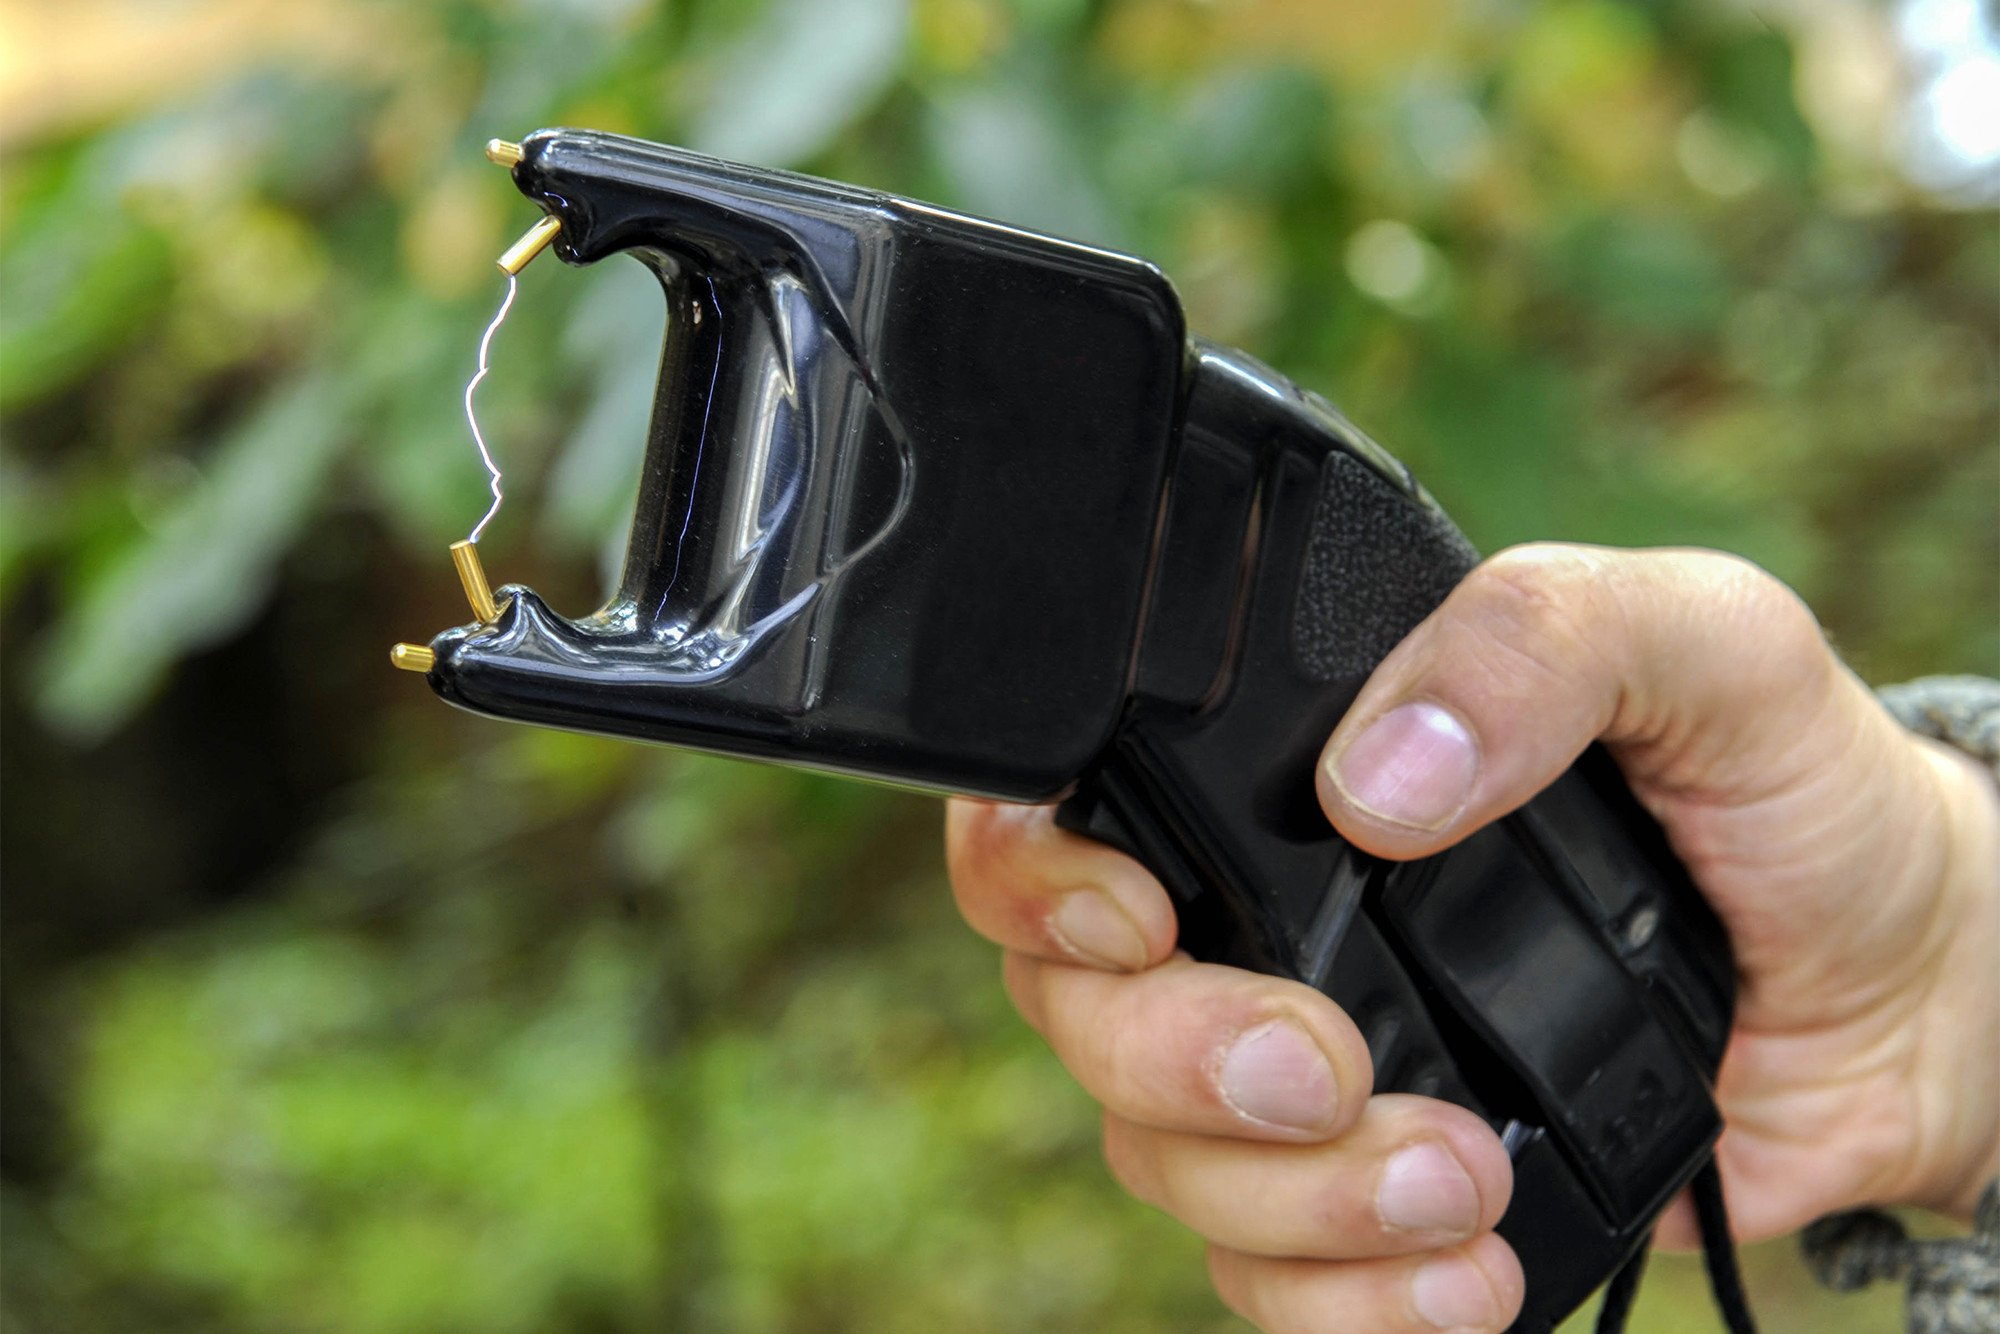 Cop who tased girl: 'This is why there's no grocery stores in the black community'